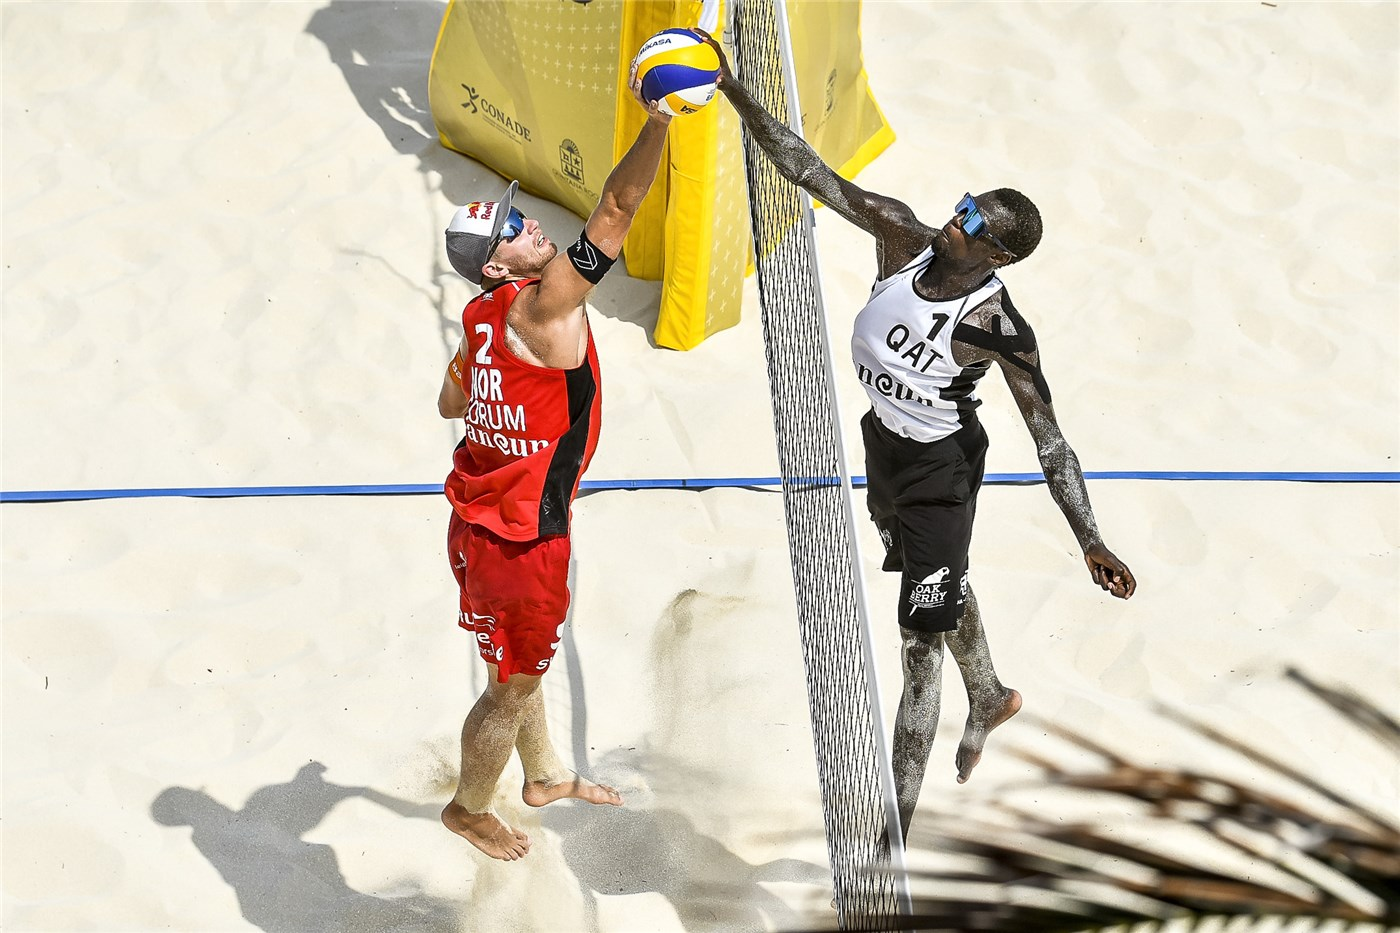 QATARIS CHERIF/AHMED CLAIM SILVER IN CANCUN